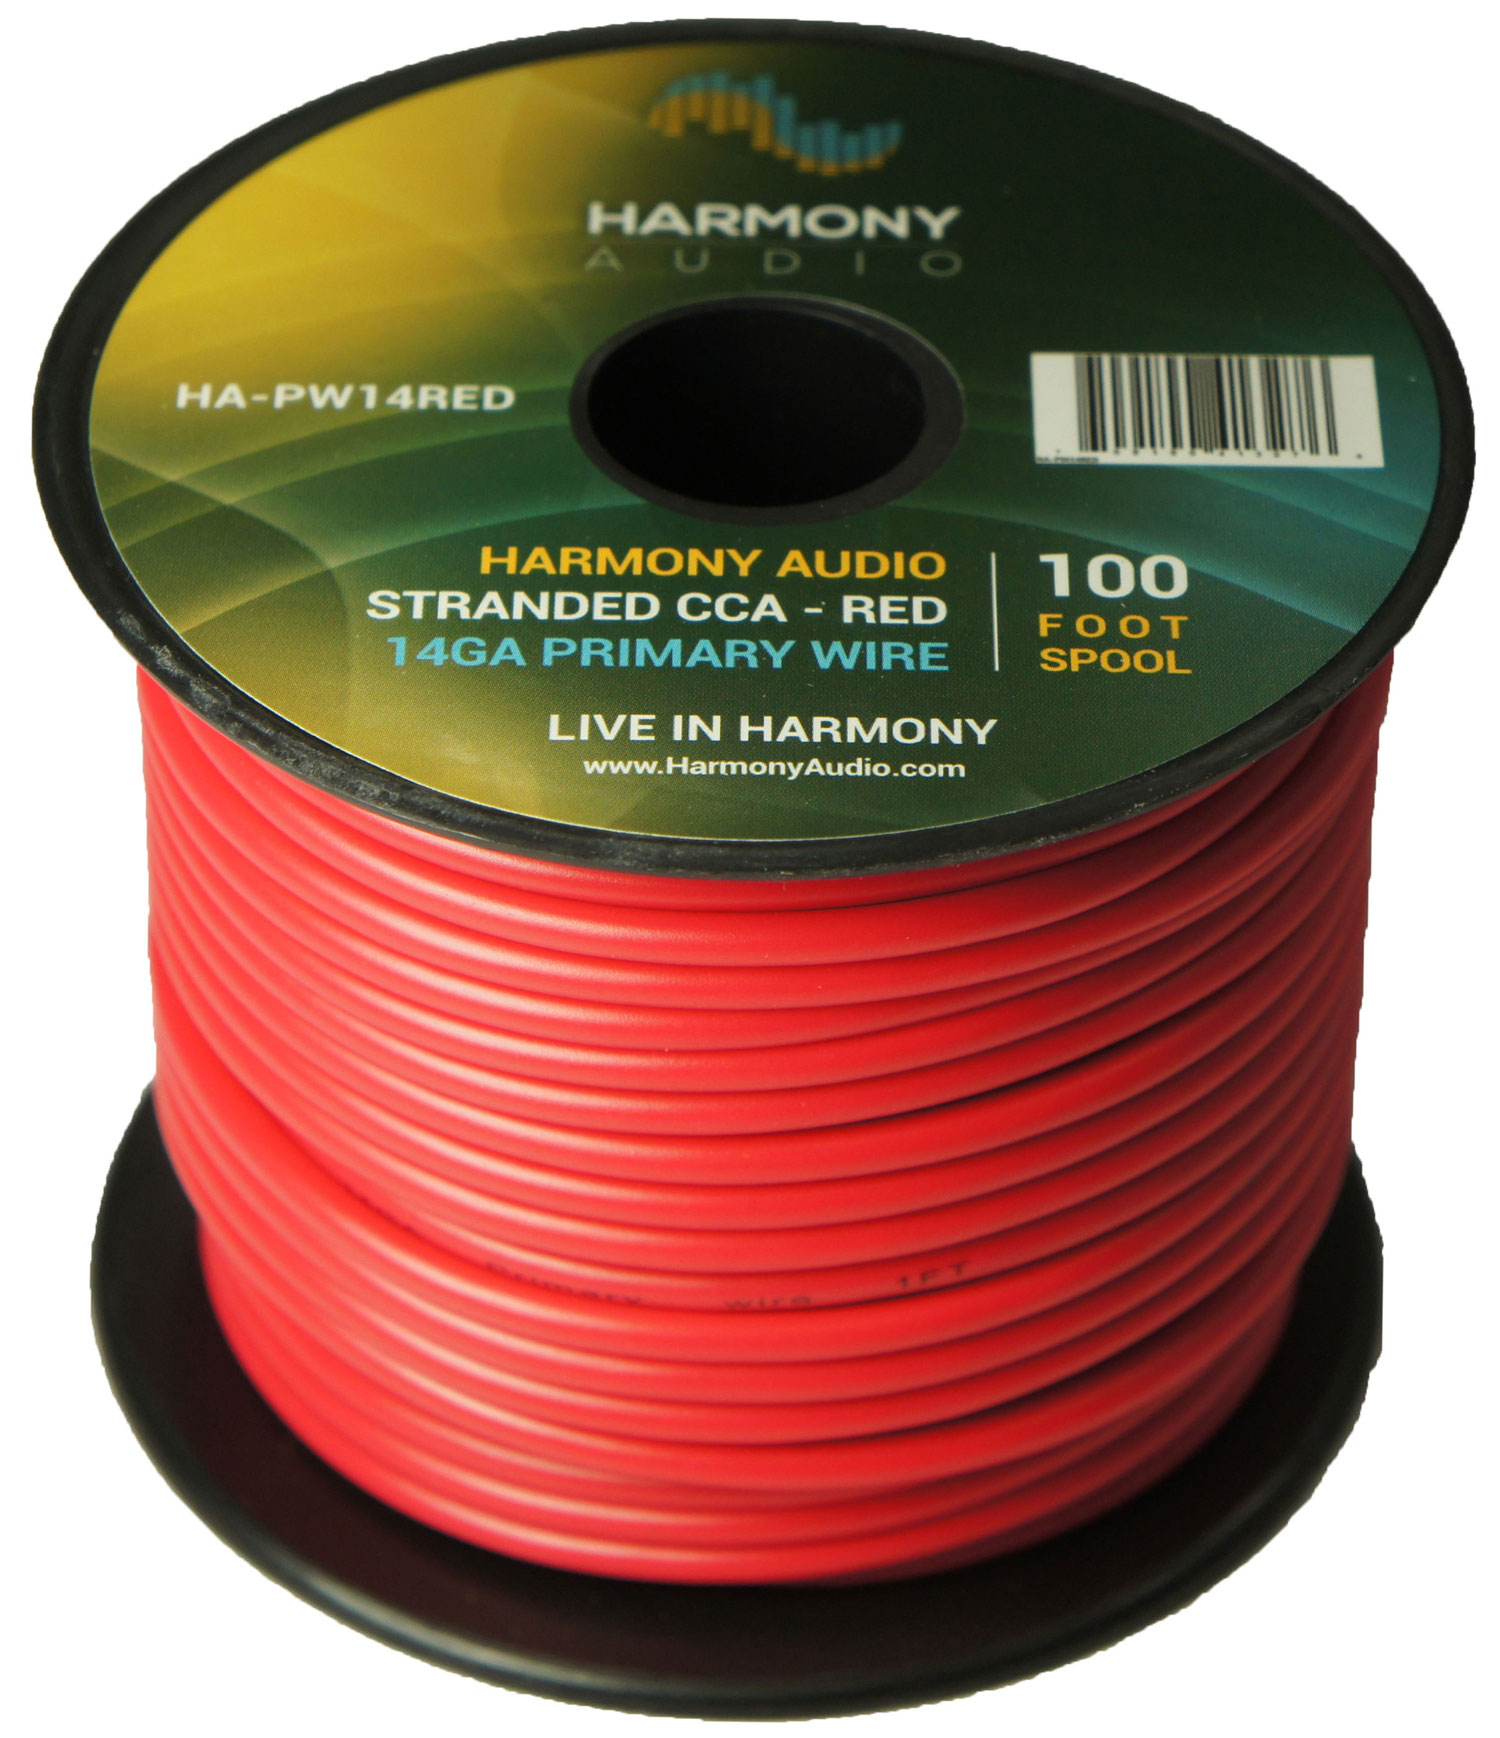 Harmony Audio HA-PW14RED Primary Single Conductor 14 Gauge Red Power or Ground Wire Roll 100 Feet Cable for Car Audio / Trailer / Model Train / Remote